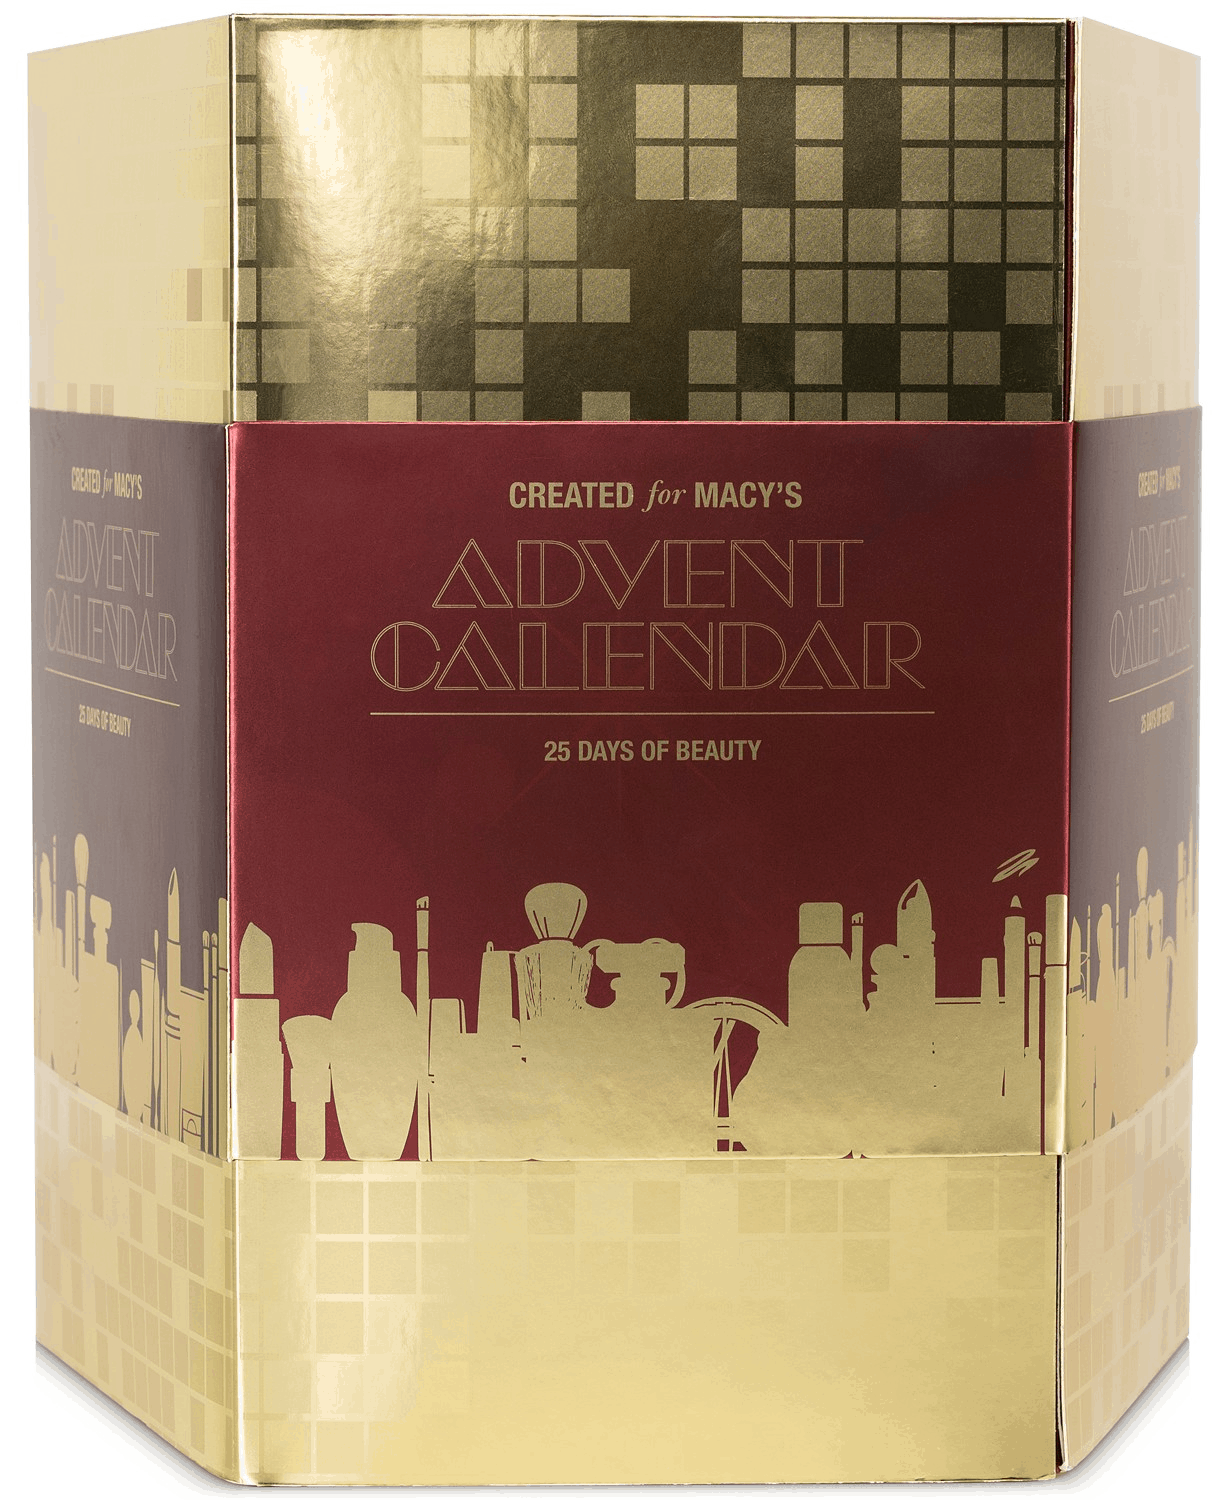 2019 Macy's Beauty Advent Calendar Black Friday Sale Coming Soon: 50% Off!